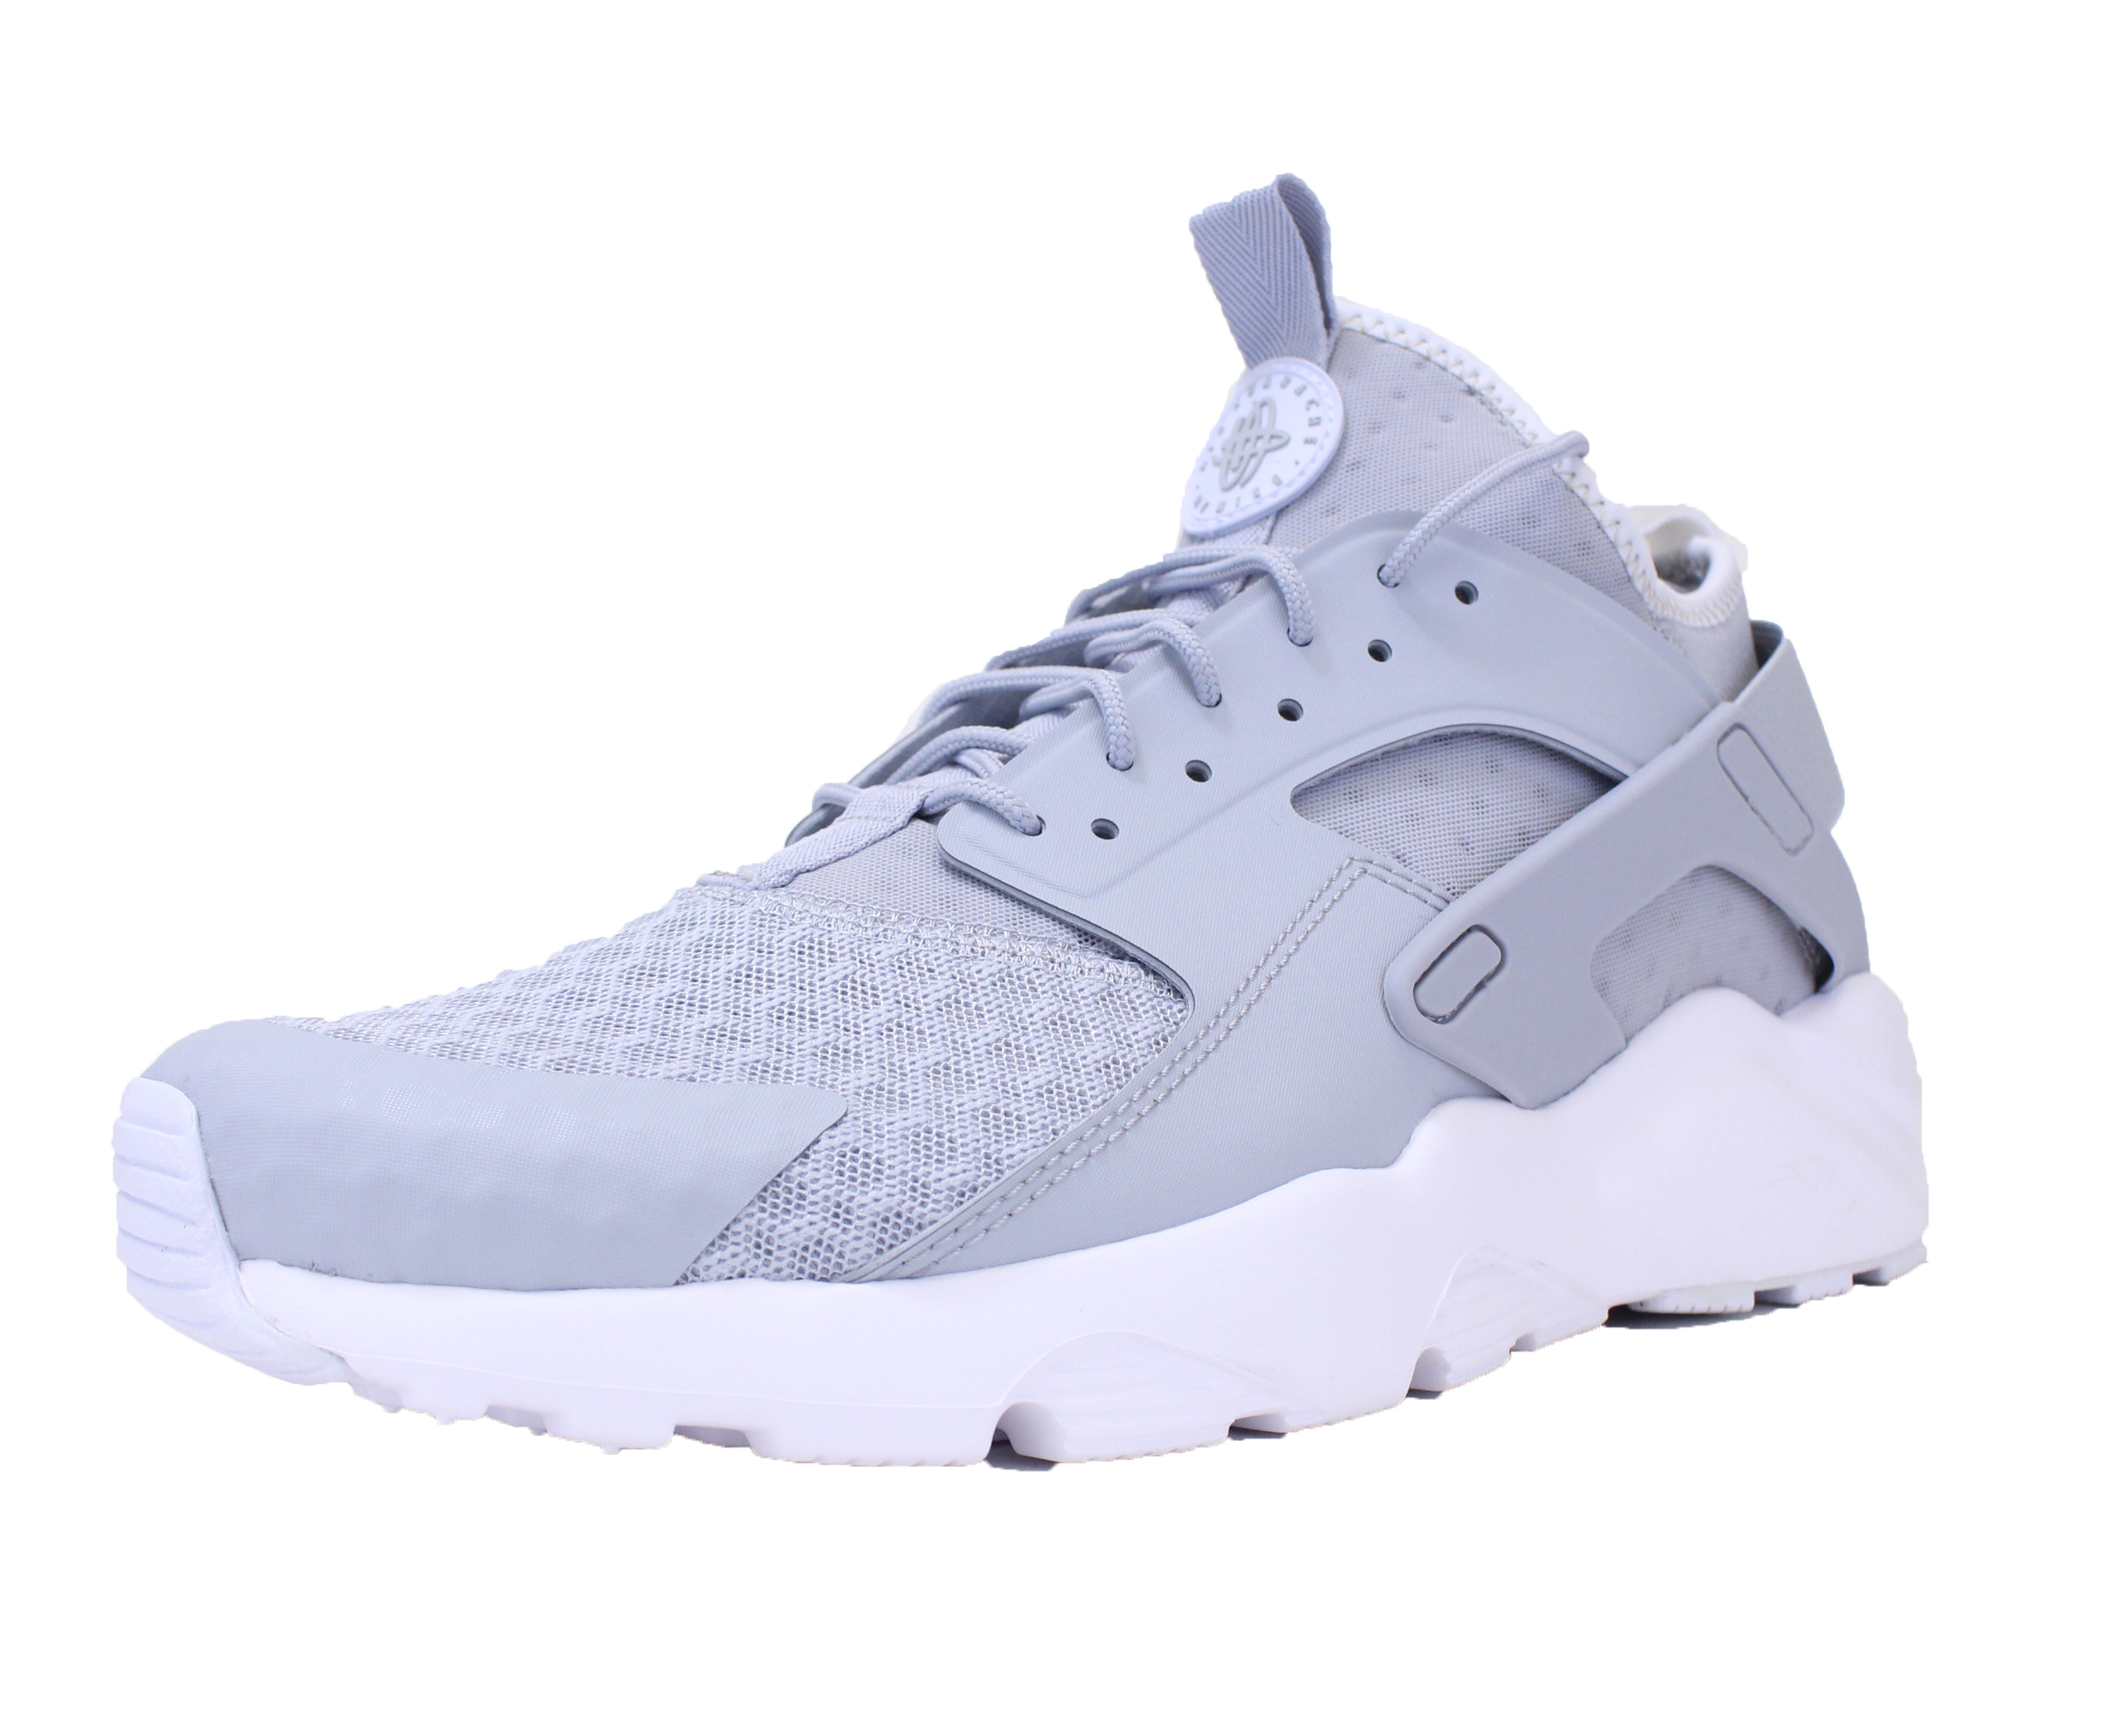 innovative design 34f76 c61e8 ... cheapest nike air huarache run ultra sz 11.5 wolf grey white running  shoe 819685 007 8bf59